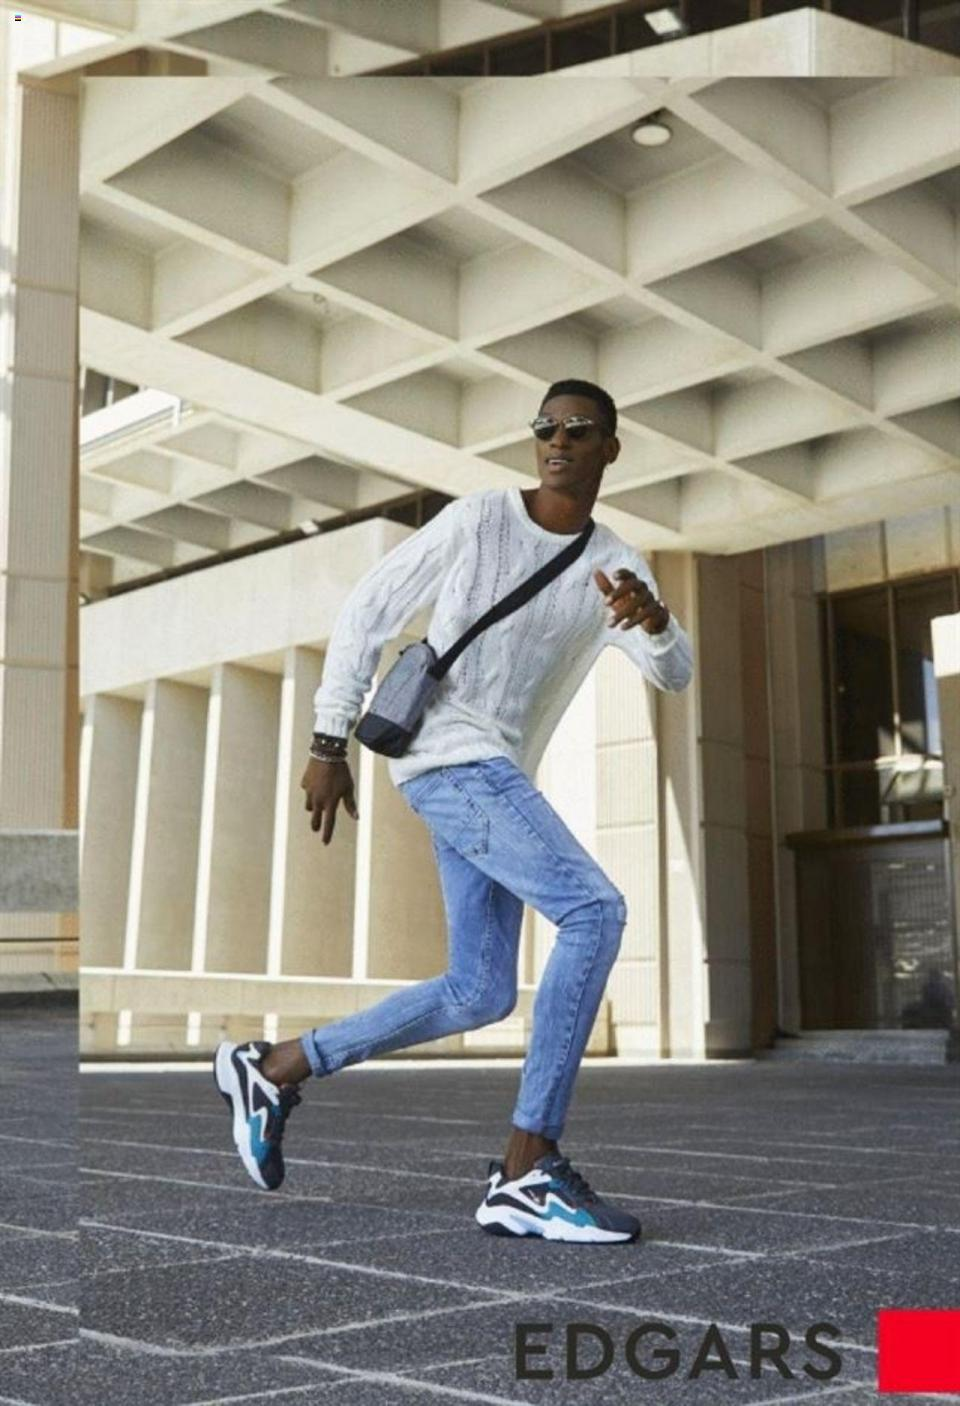 edgars specials men lookbook 16 april 2020